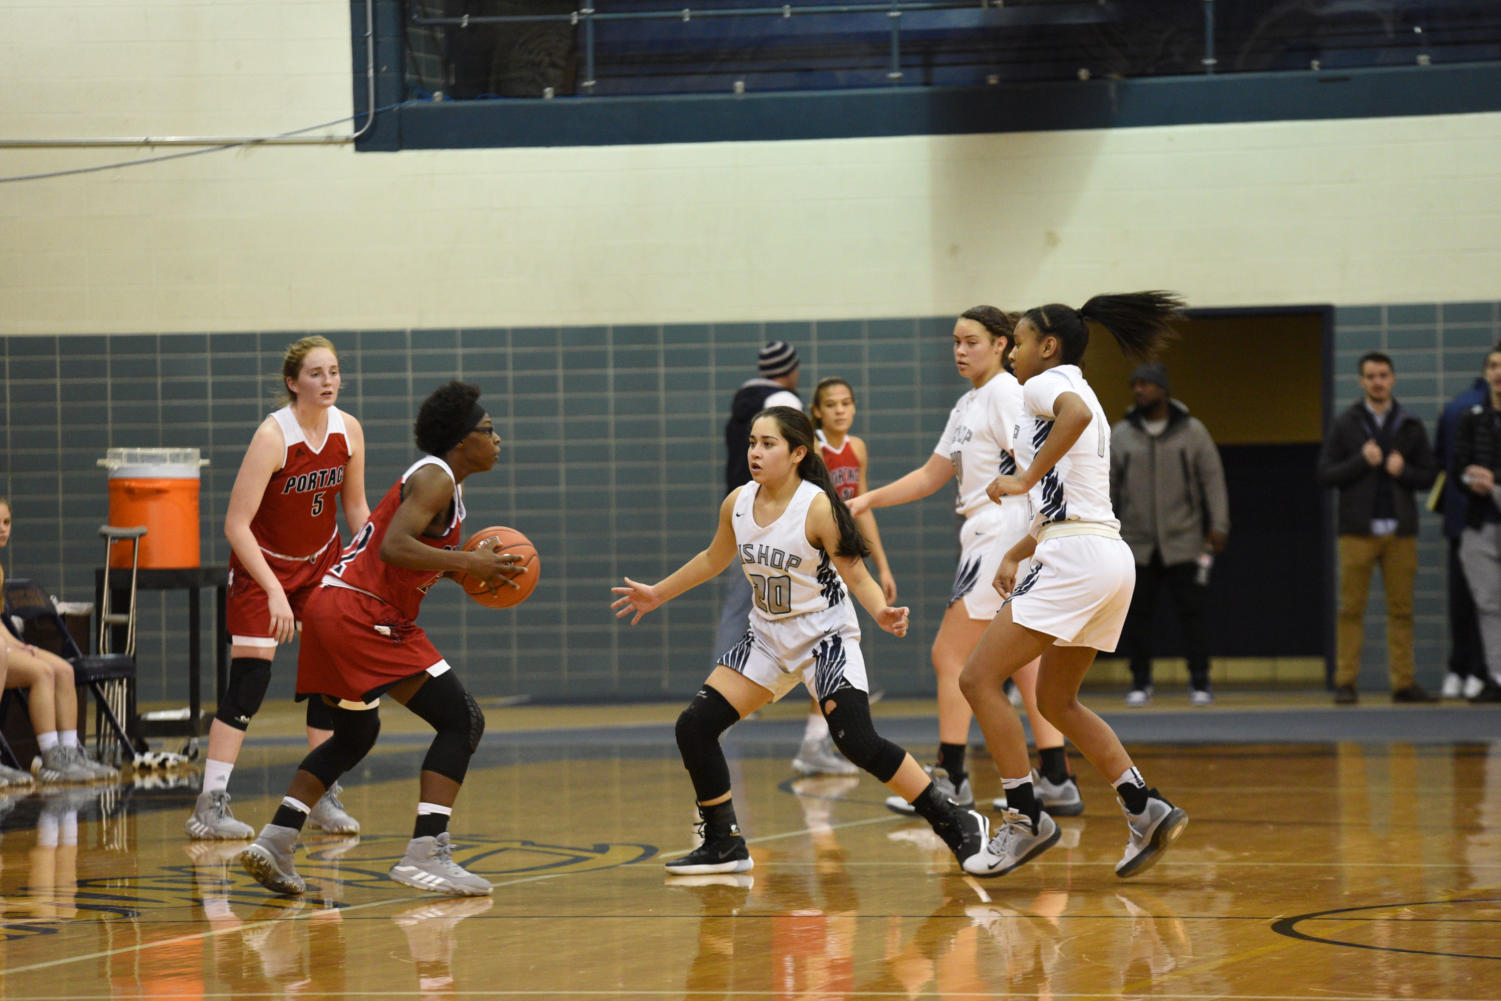 Freshman Brianna Gonzalez joins senior Courtney Blakely and sophomore Danneli Campbell in trapping a Portage High School defender on Nov. 26 at Bishop Noll.